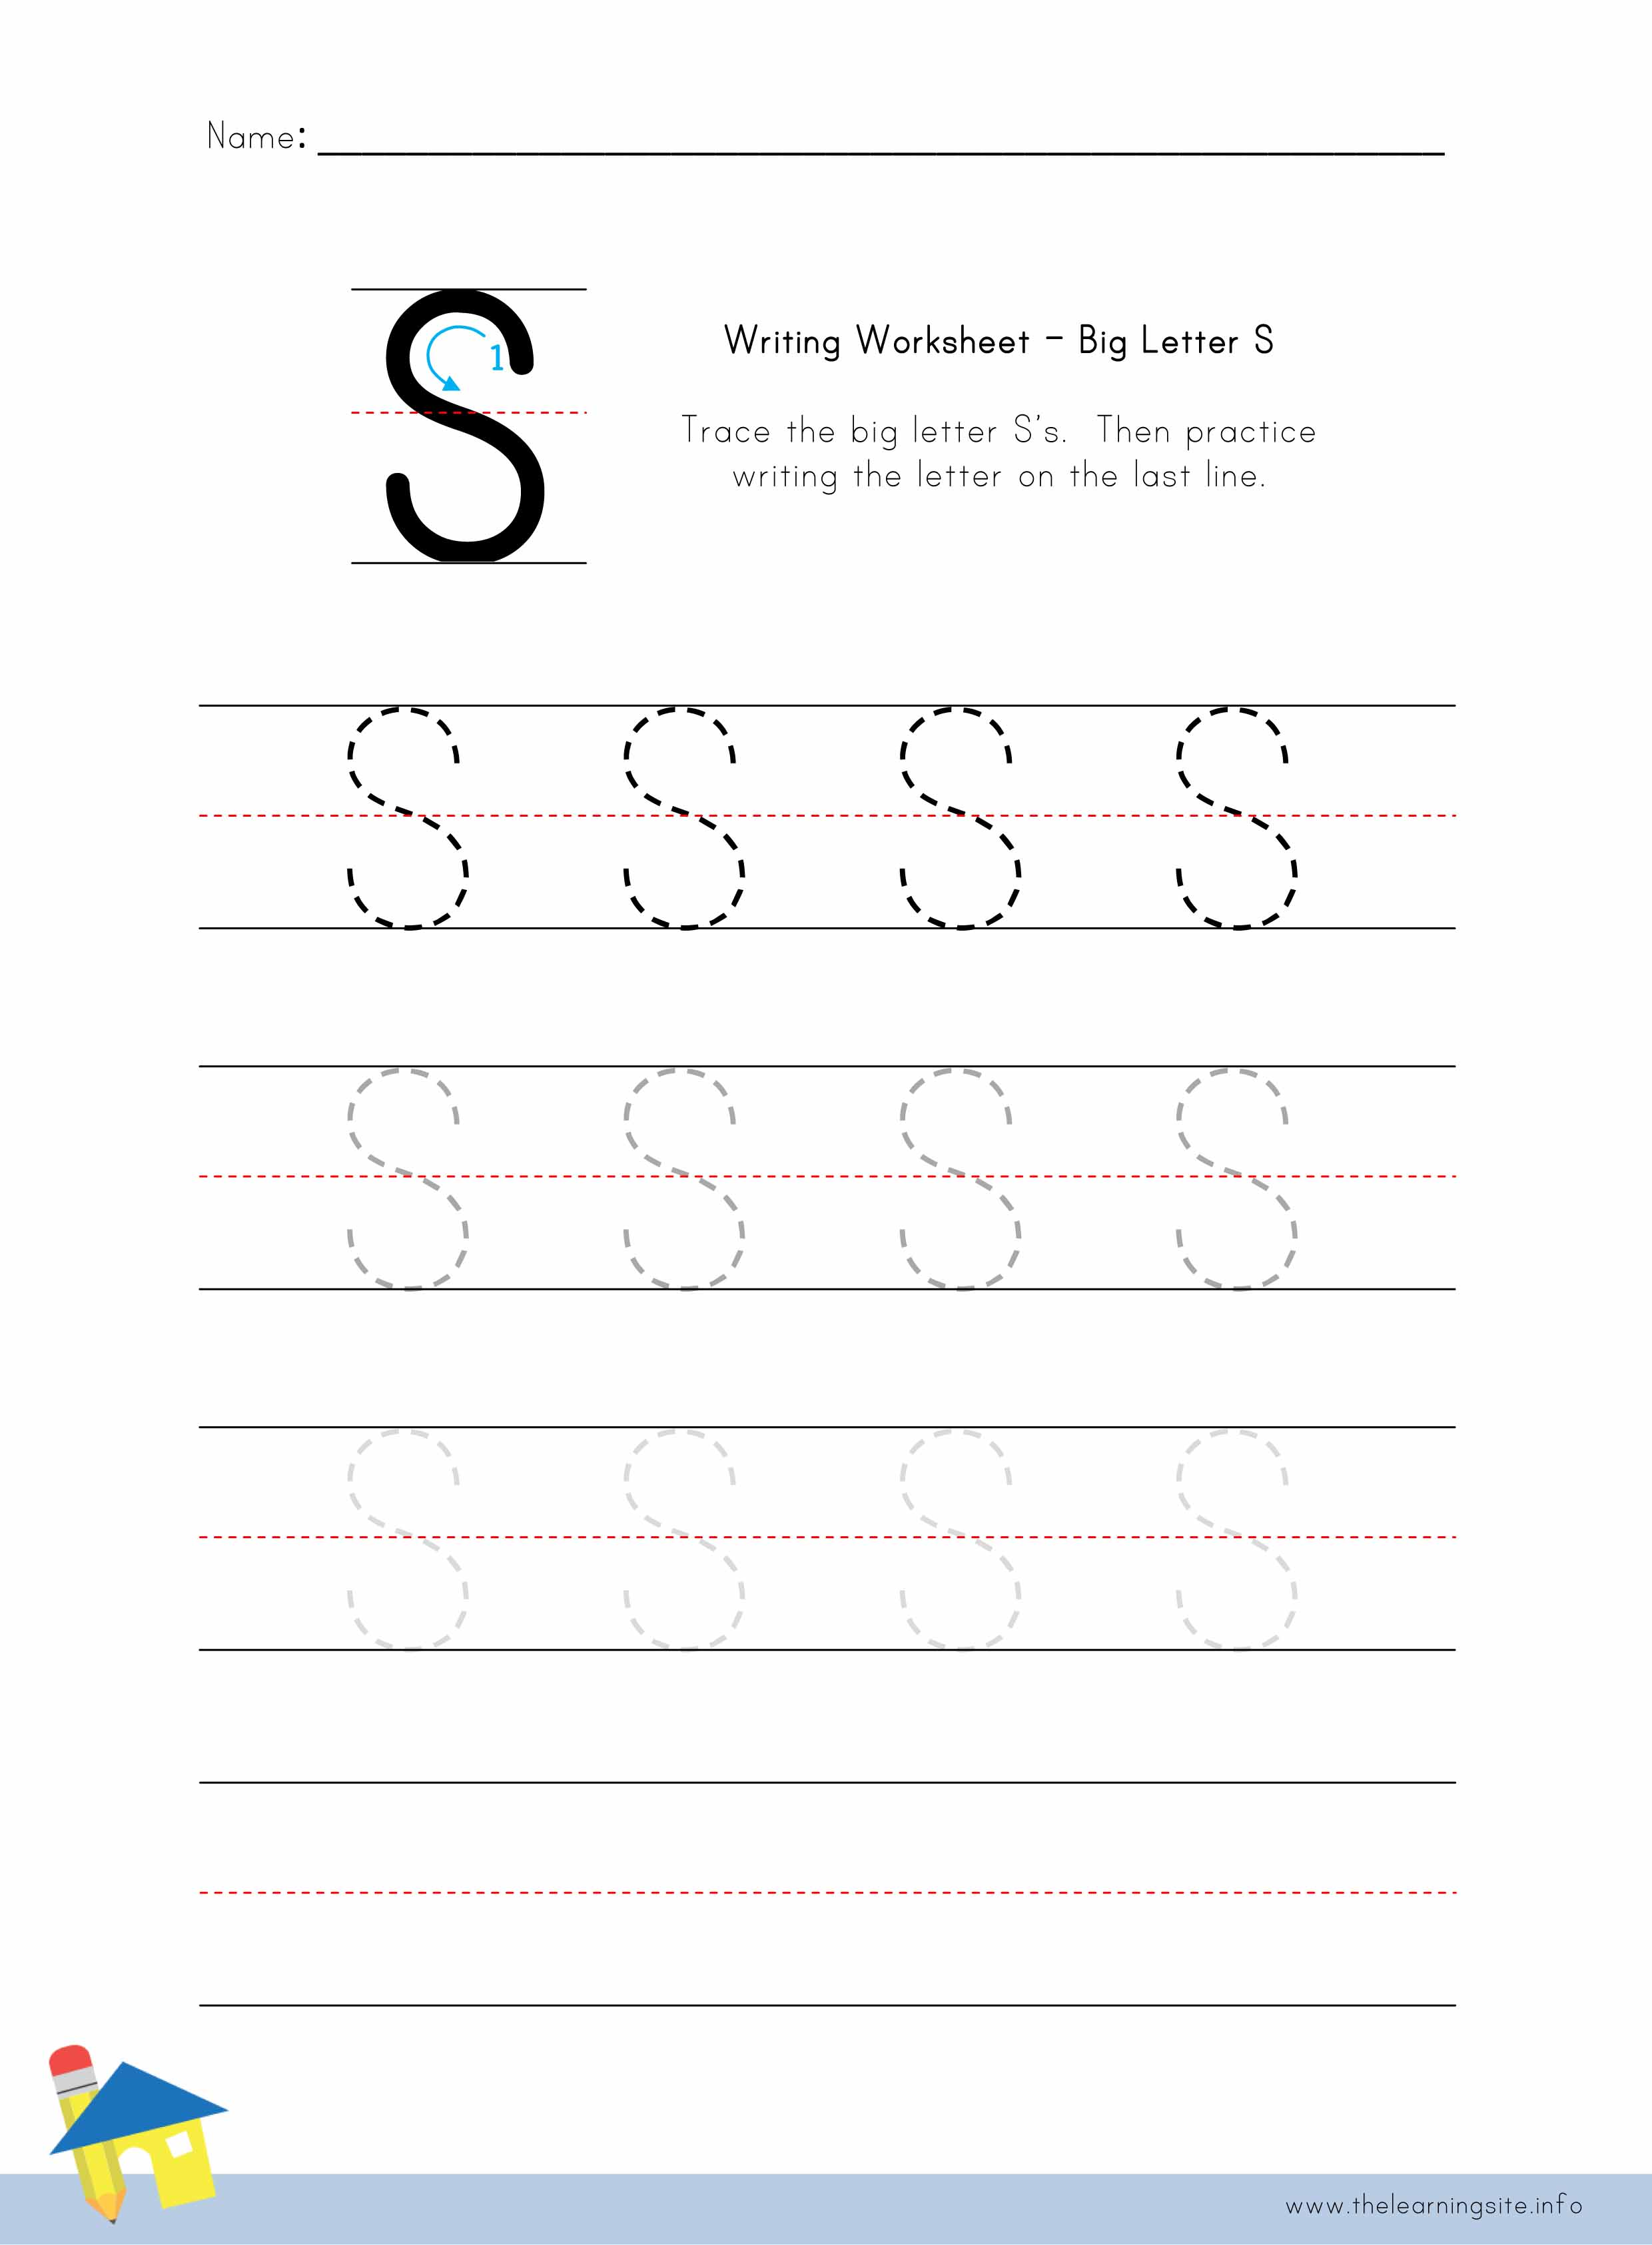 Worksheet Writing The Letter S the learning site big letter s writing worksheet